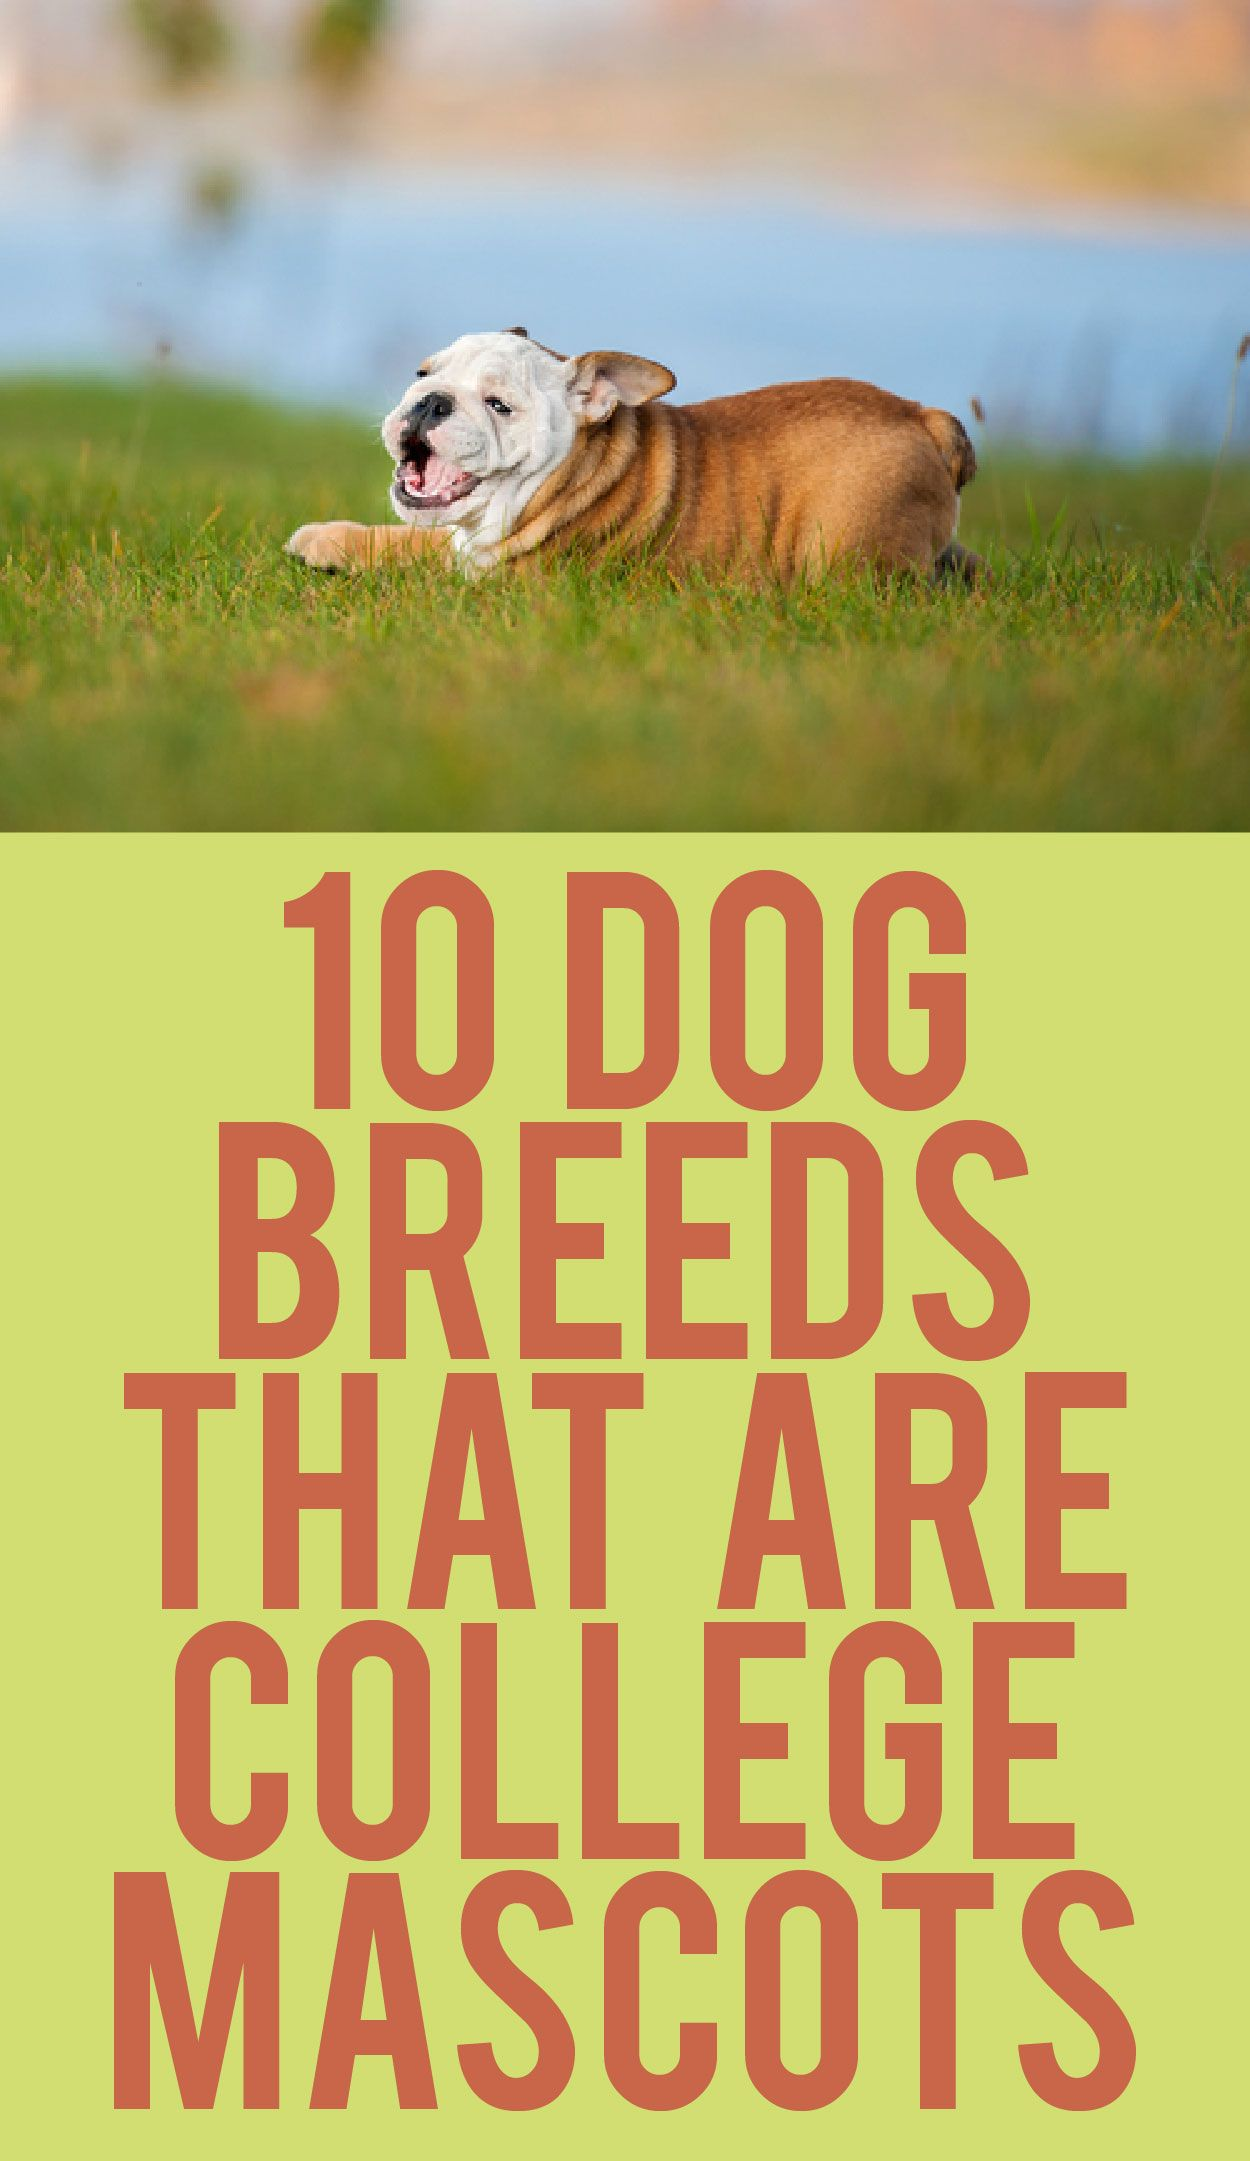 10 Dog Breeds That Are College Mascots Dog breeds, Dogs